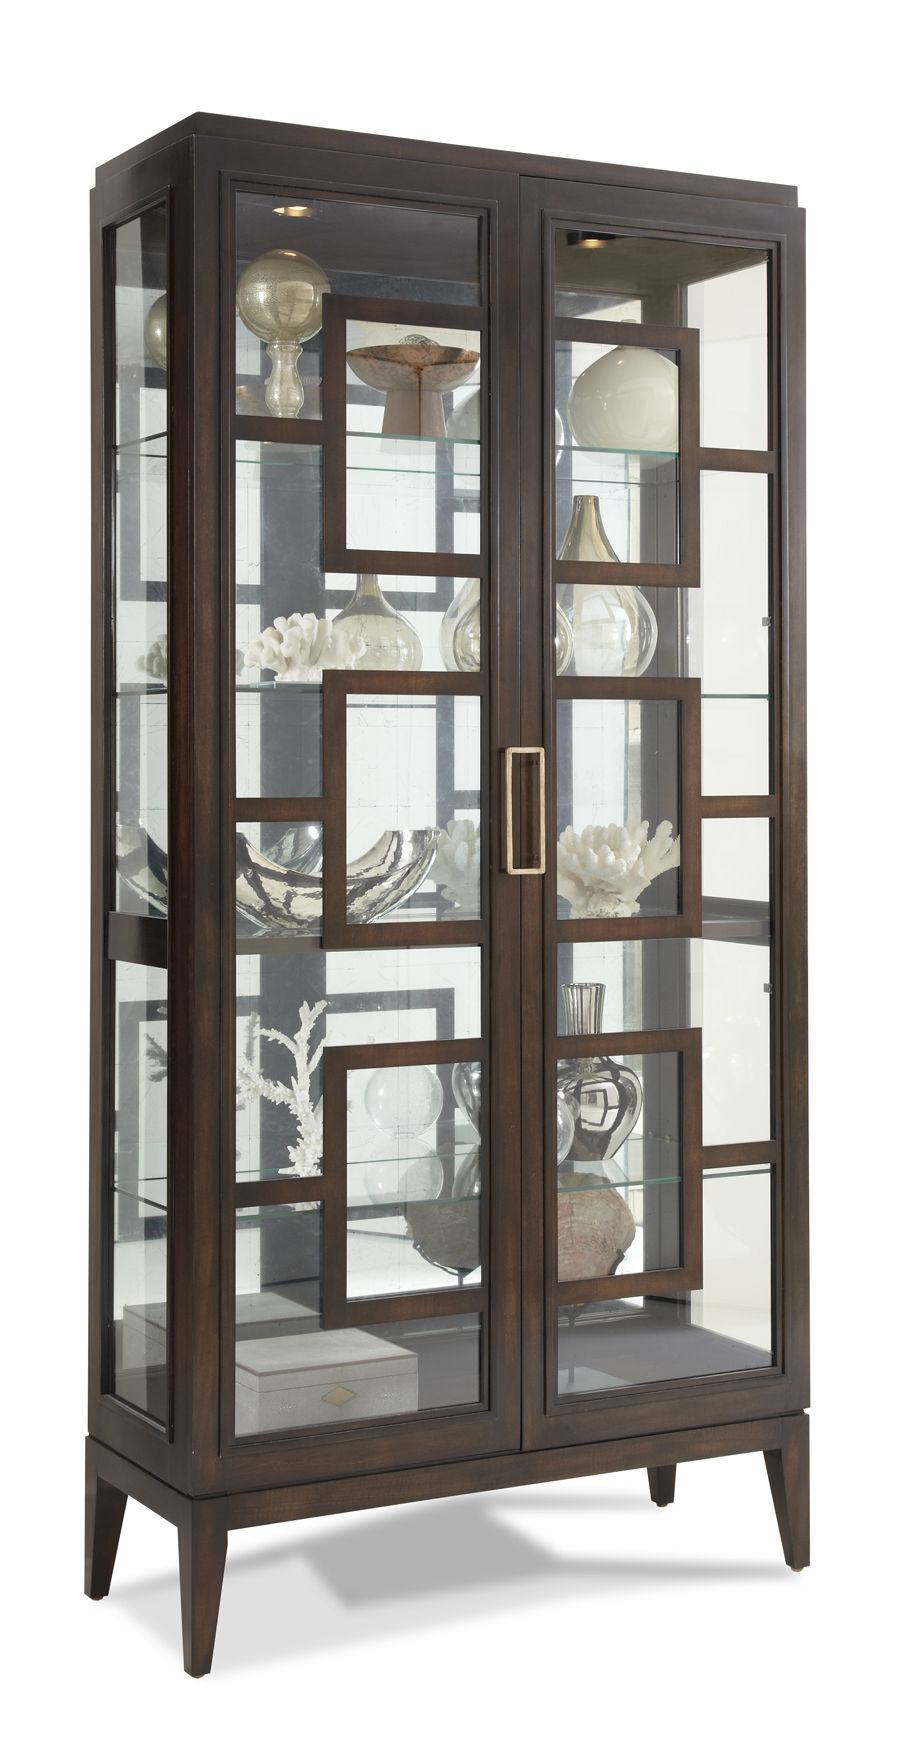 Pick Your Own Finish Hickory White – 440 41 Rhodes Curio Inside Contemporary Style Wooden Buffets With Two Side Door Storage Cabinets (View 21 of 30)